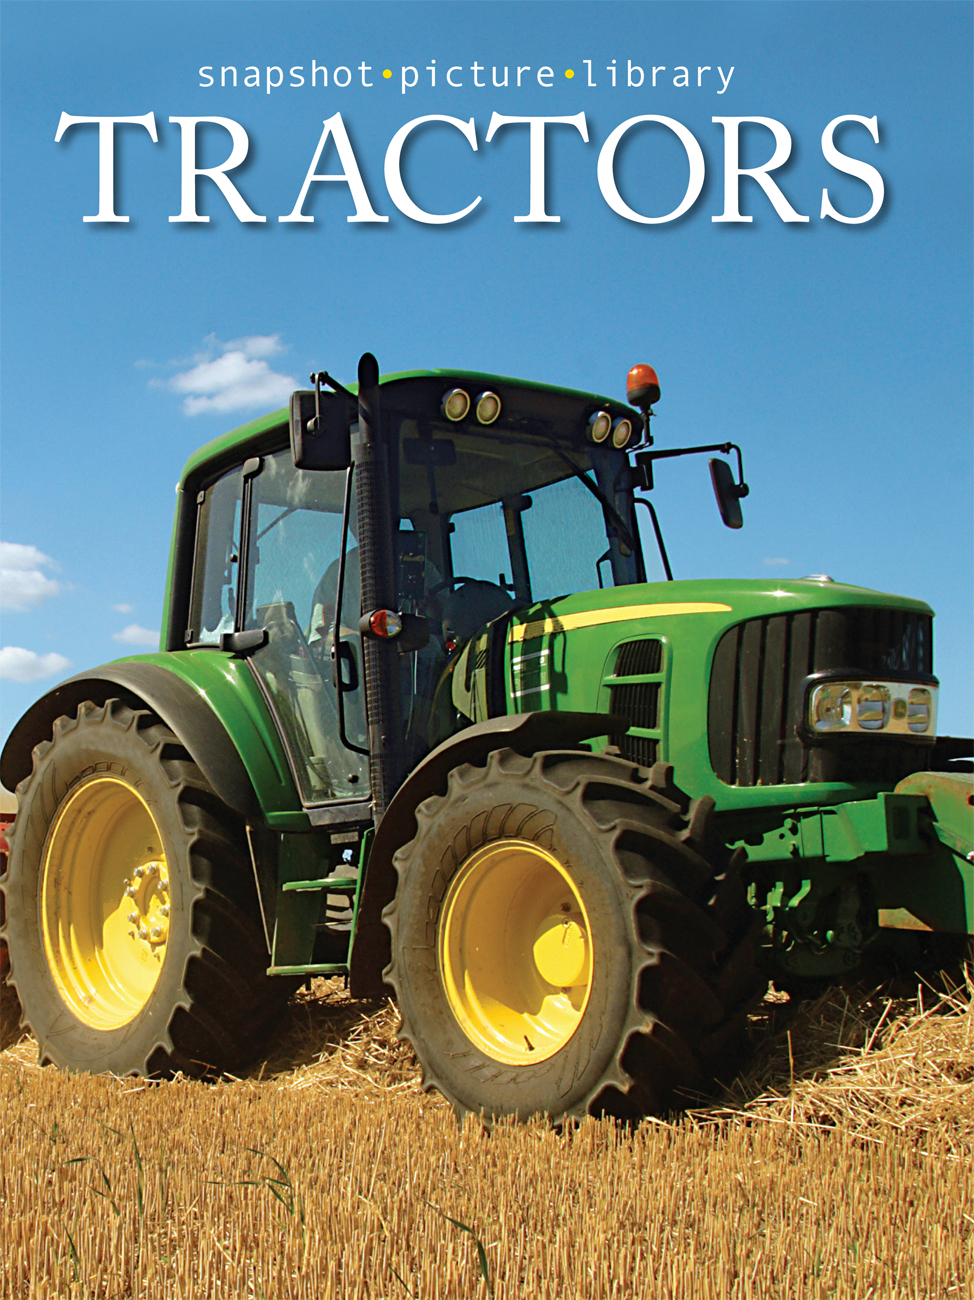 Tractors By: Snapshot Picture Library